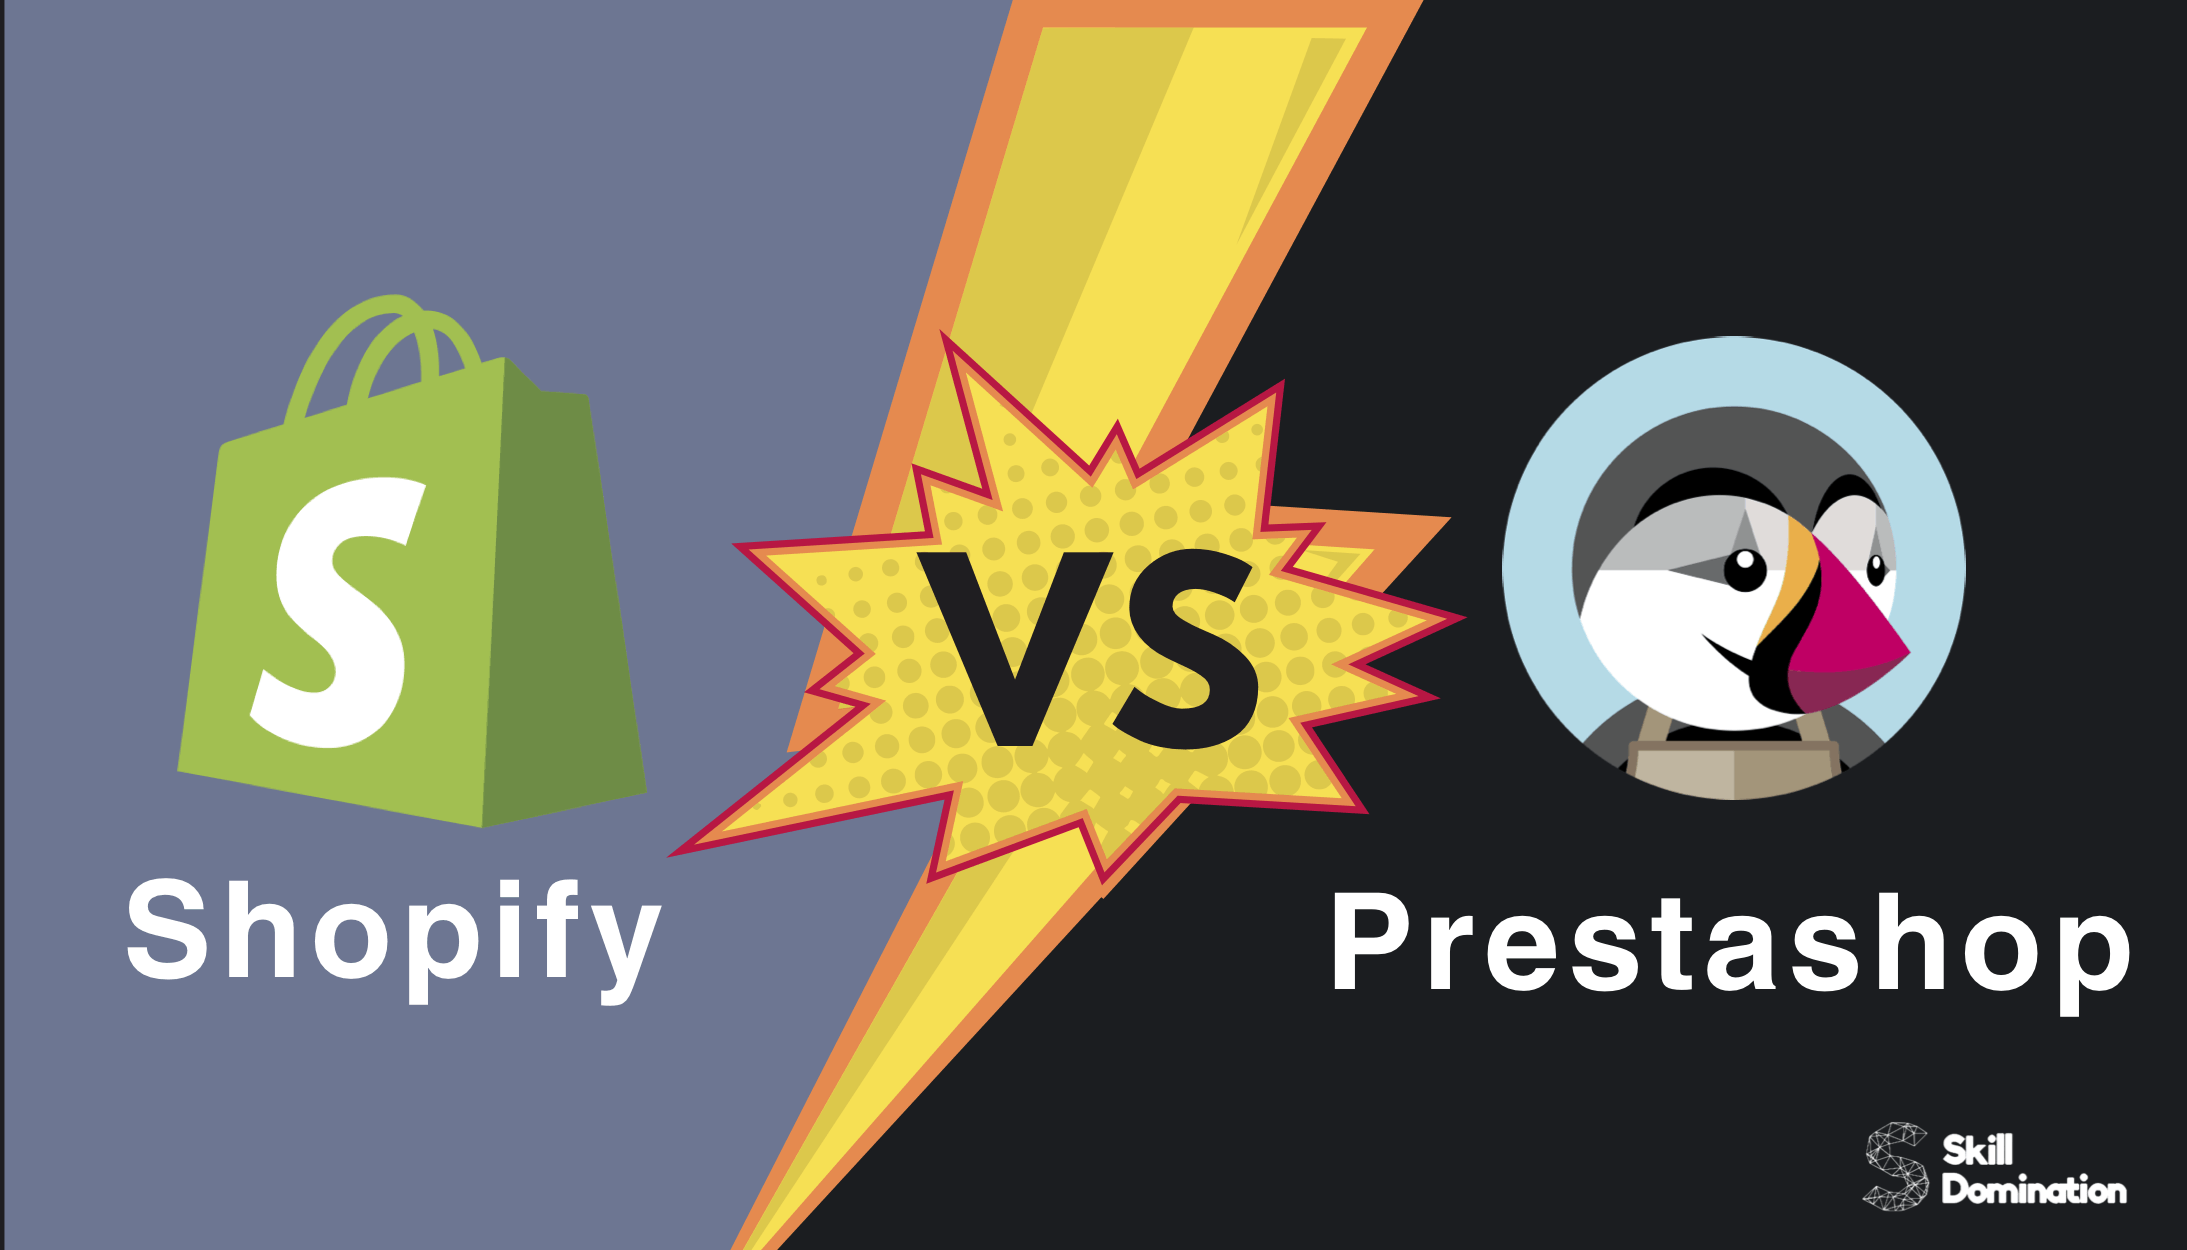 Shopify vs Prestashop ¿Que plataforma es mejor para Dropshipping?